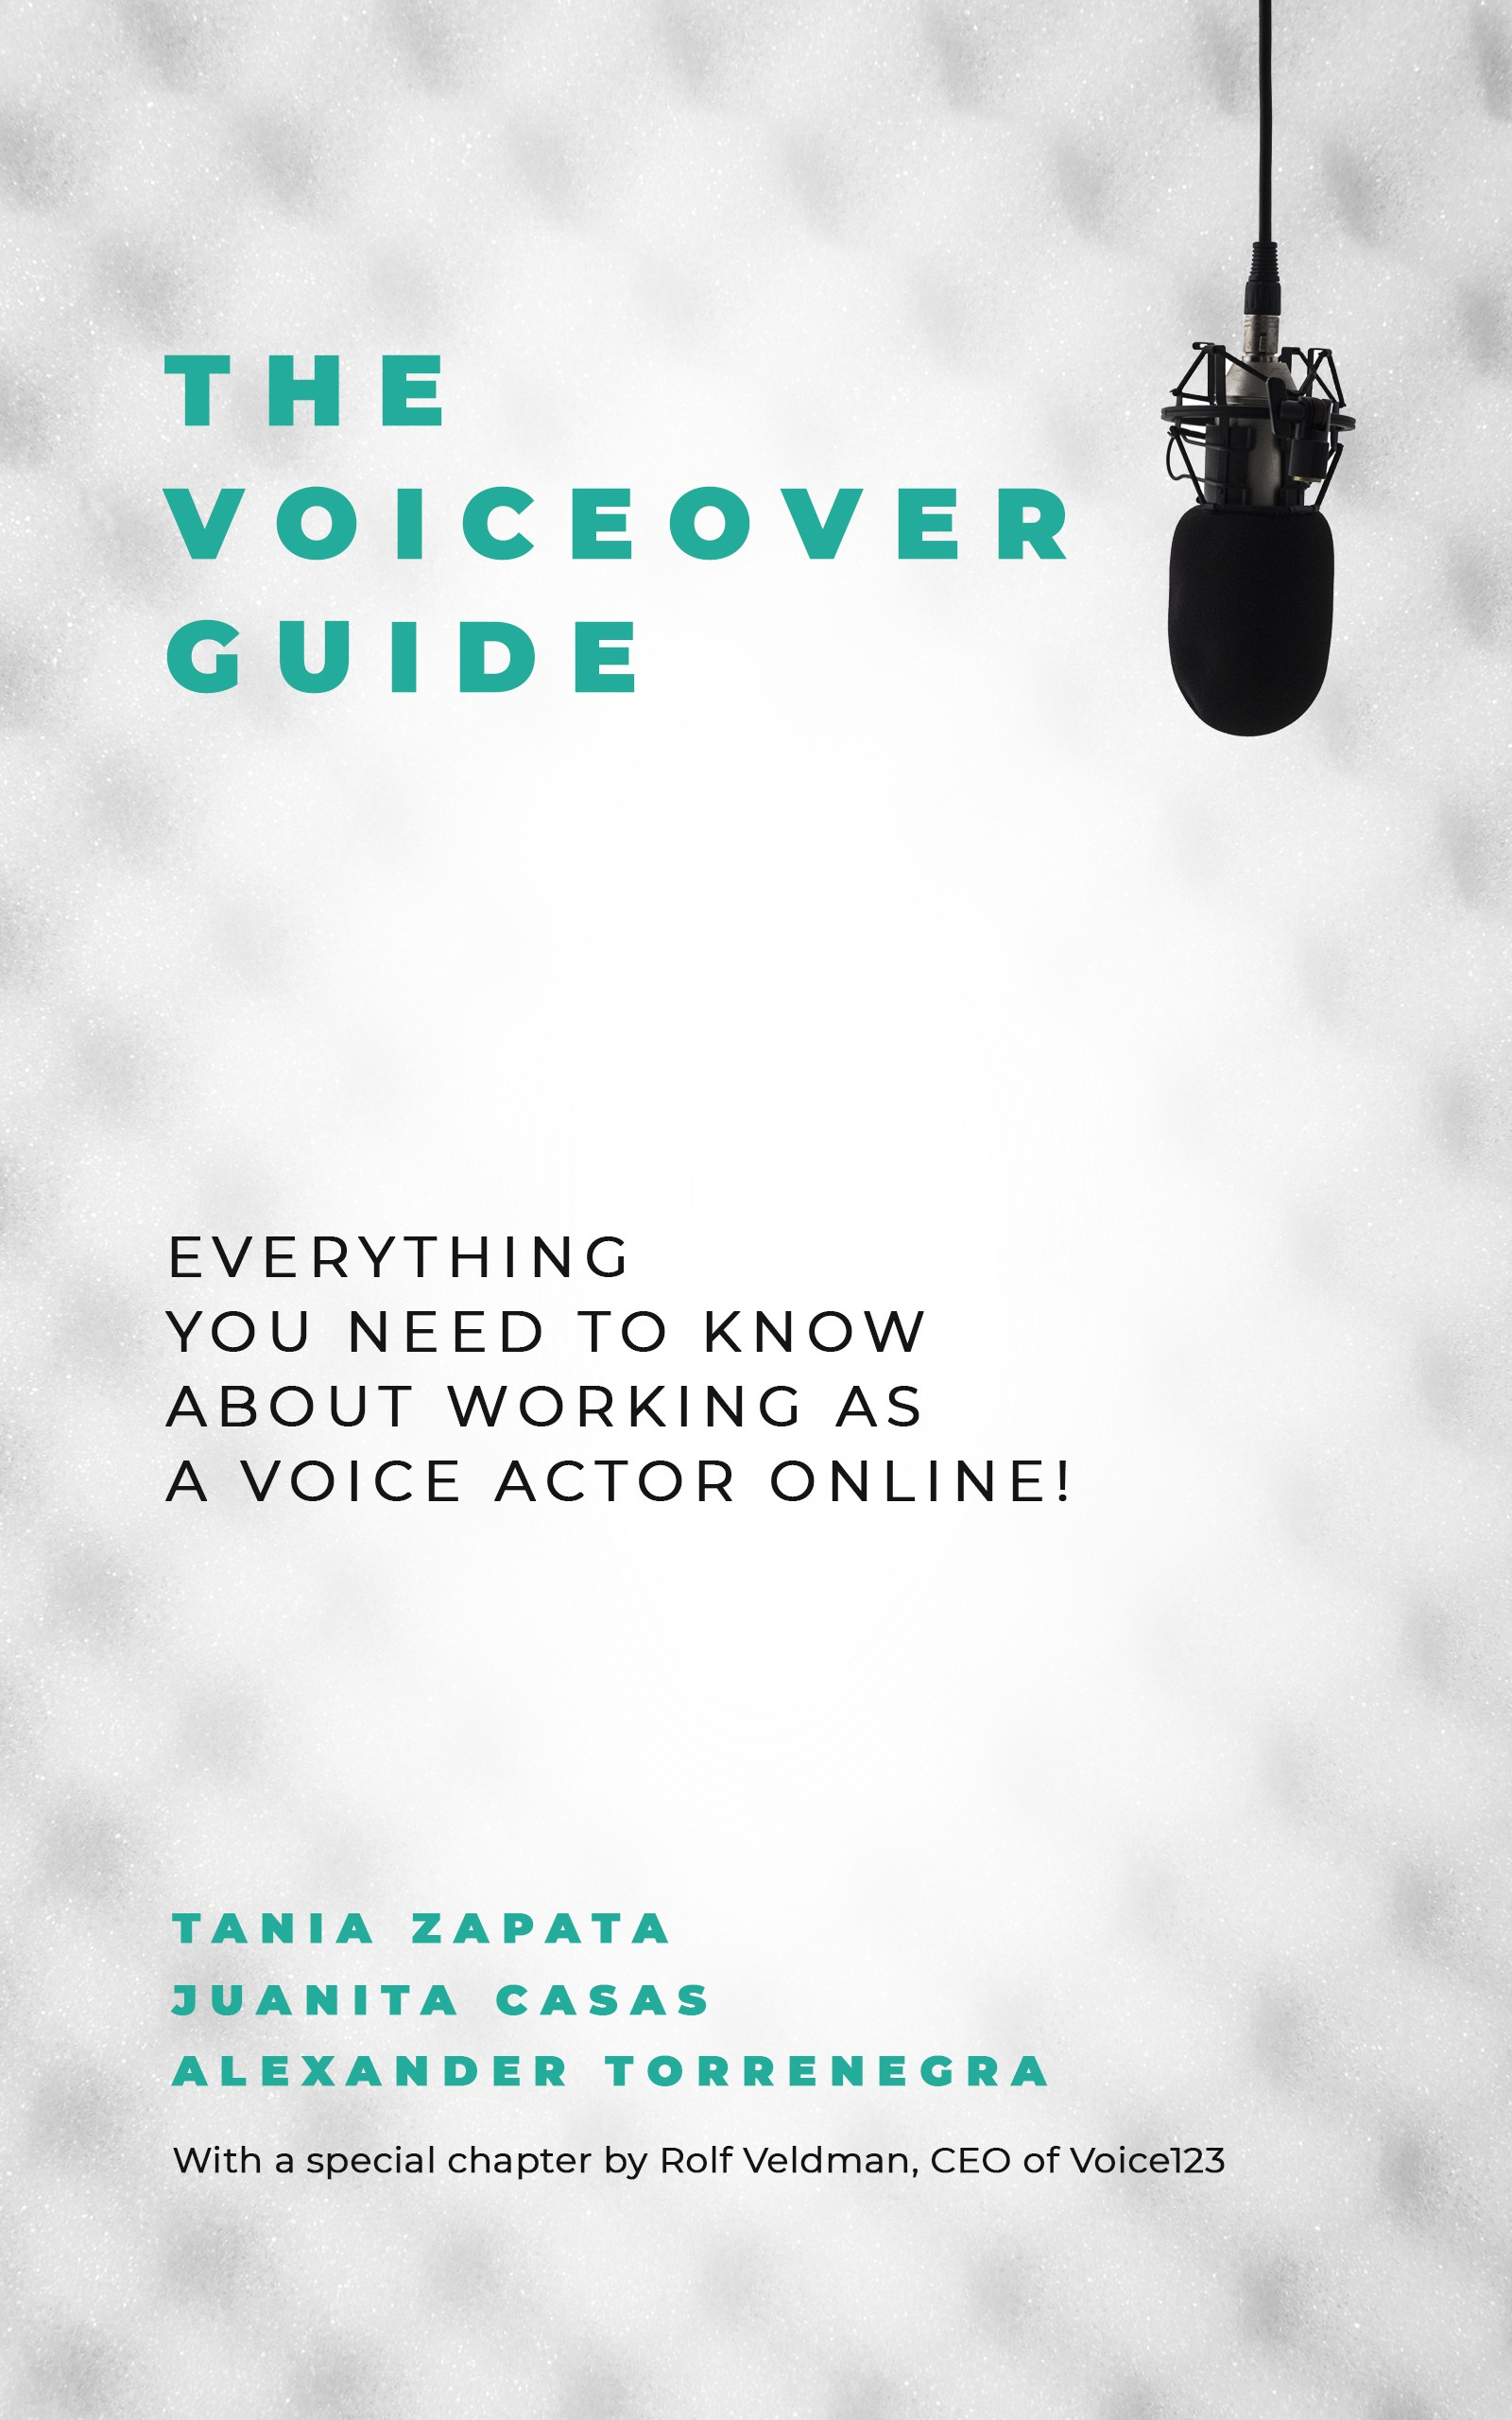 Create an e-book cover for the definitive guide to the online voiceover industry!